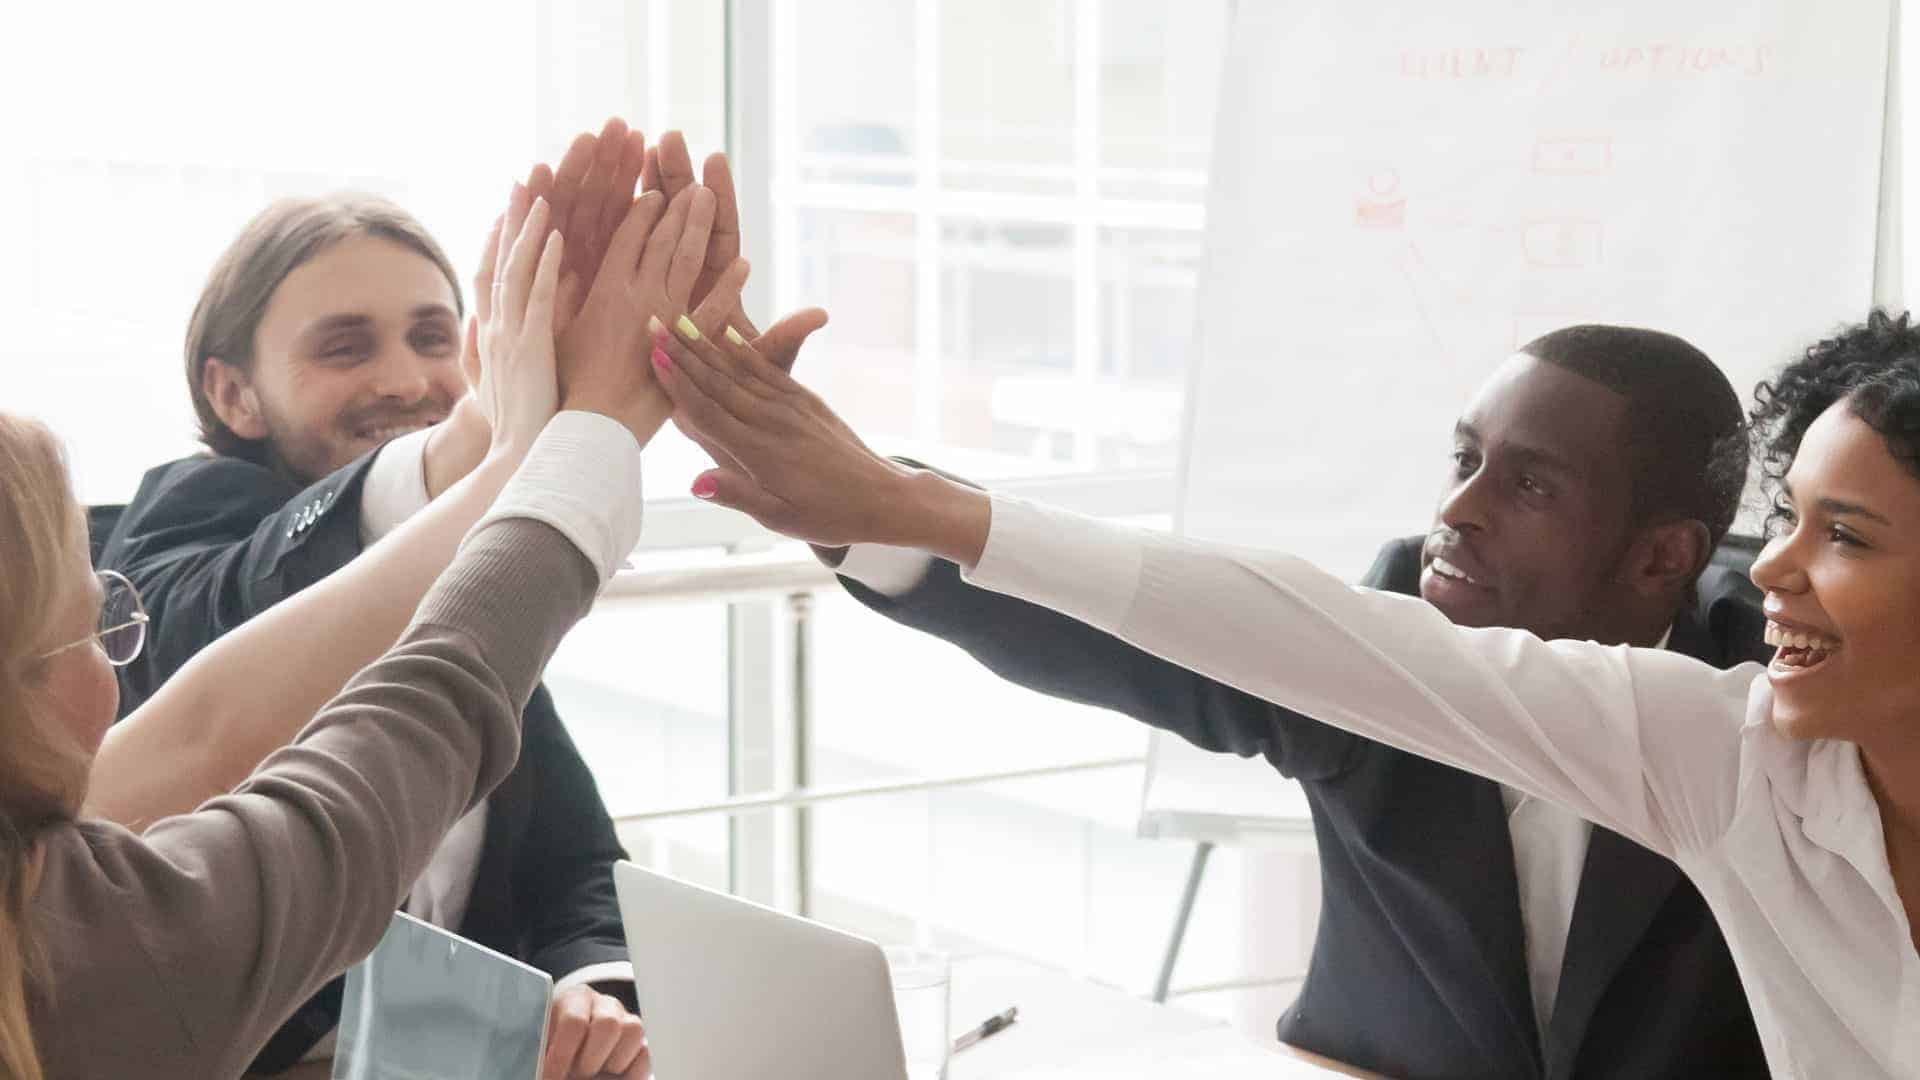 Image of business people giving a group high five